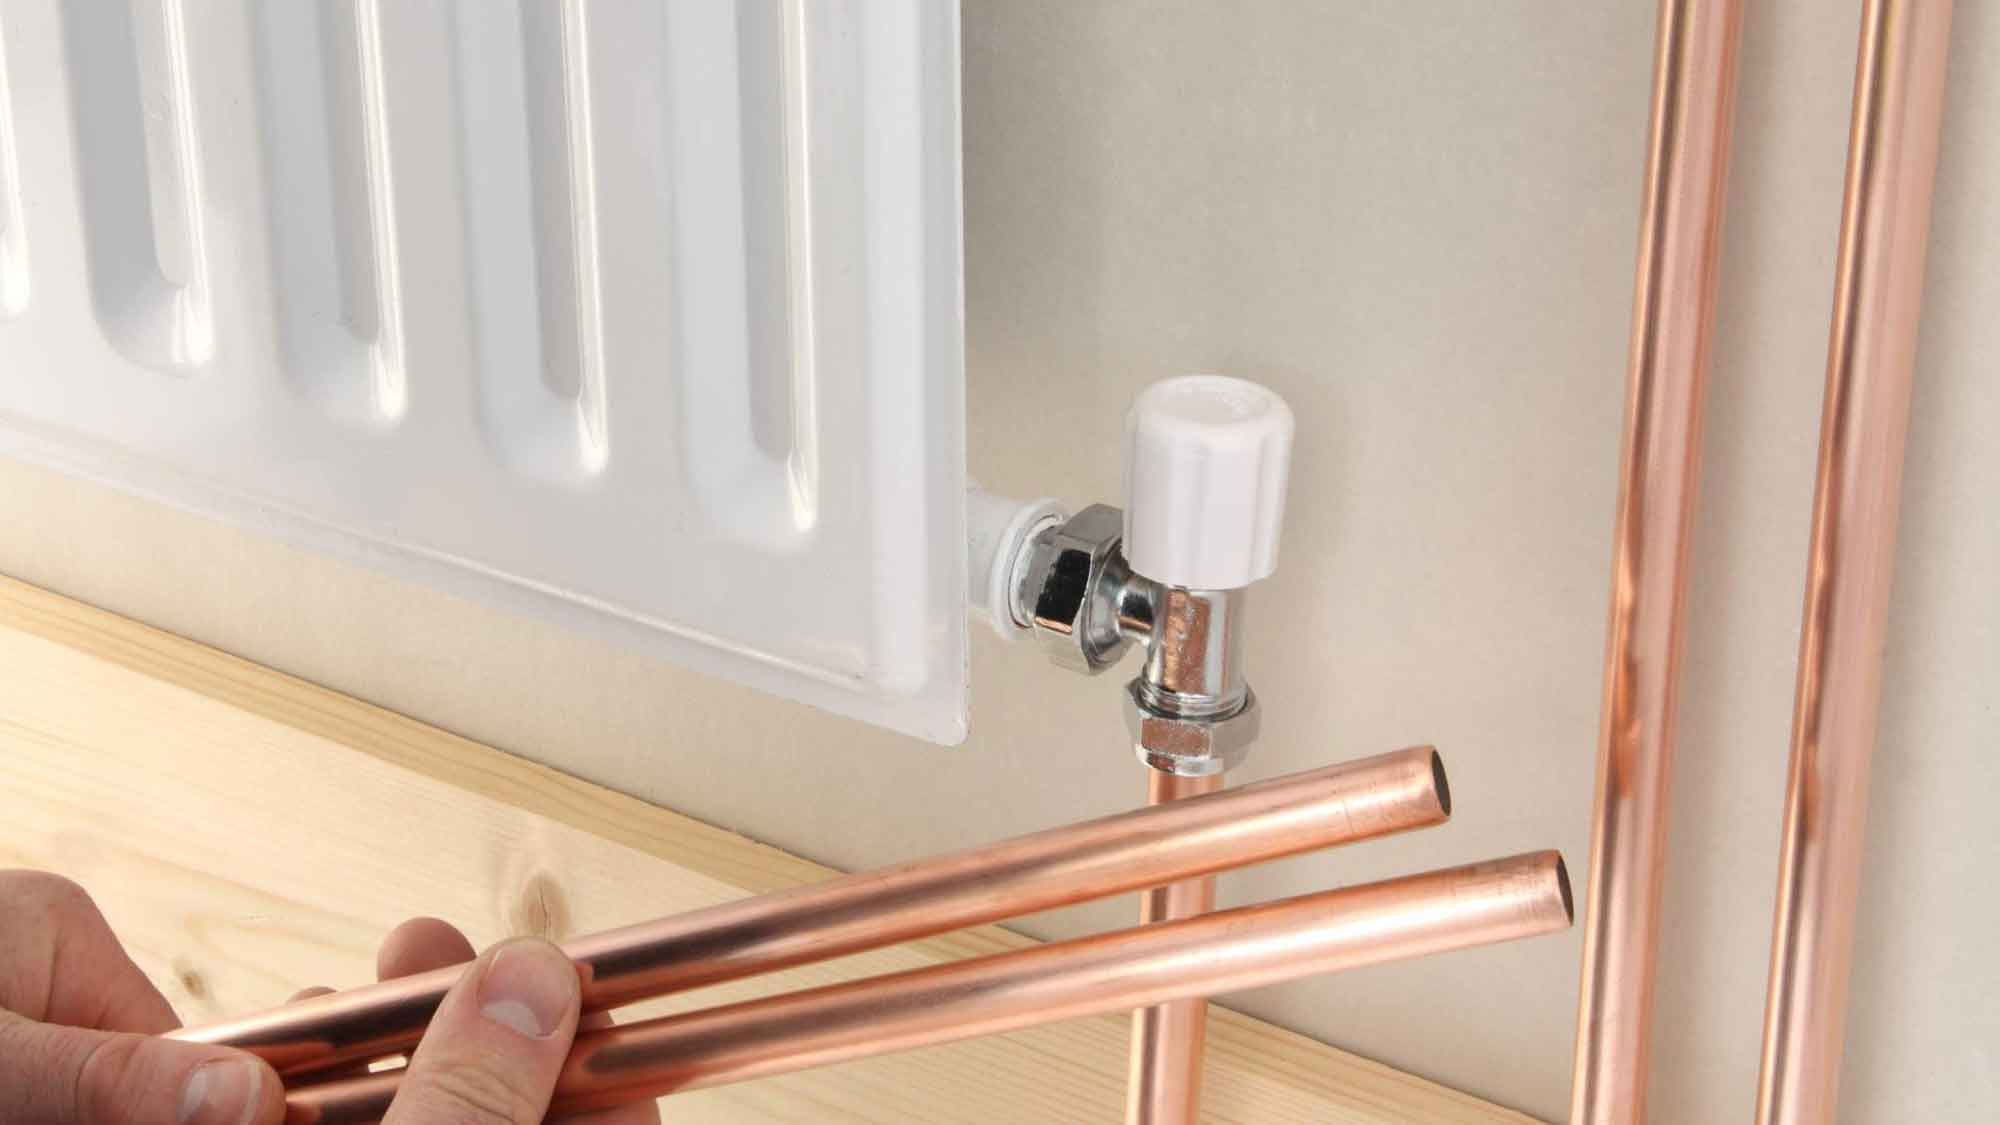 central heating service essex maintenance leigh on sea pipes